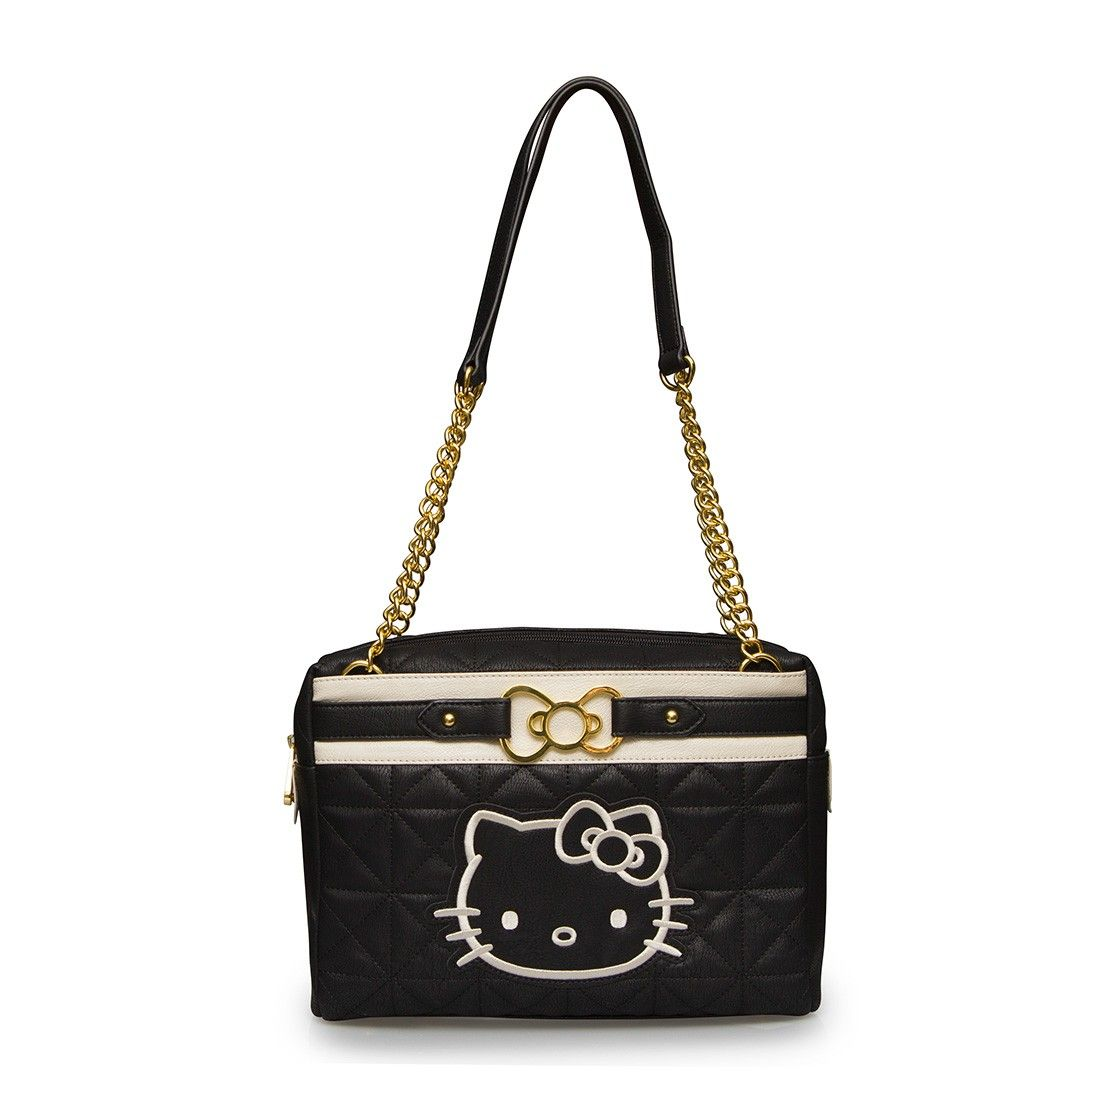 1af5fa098478 Hello Kitty Black Cream Quilted Bag With Gold Metal Bow - Hello Kitty -  Brands